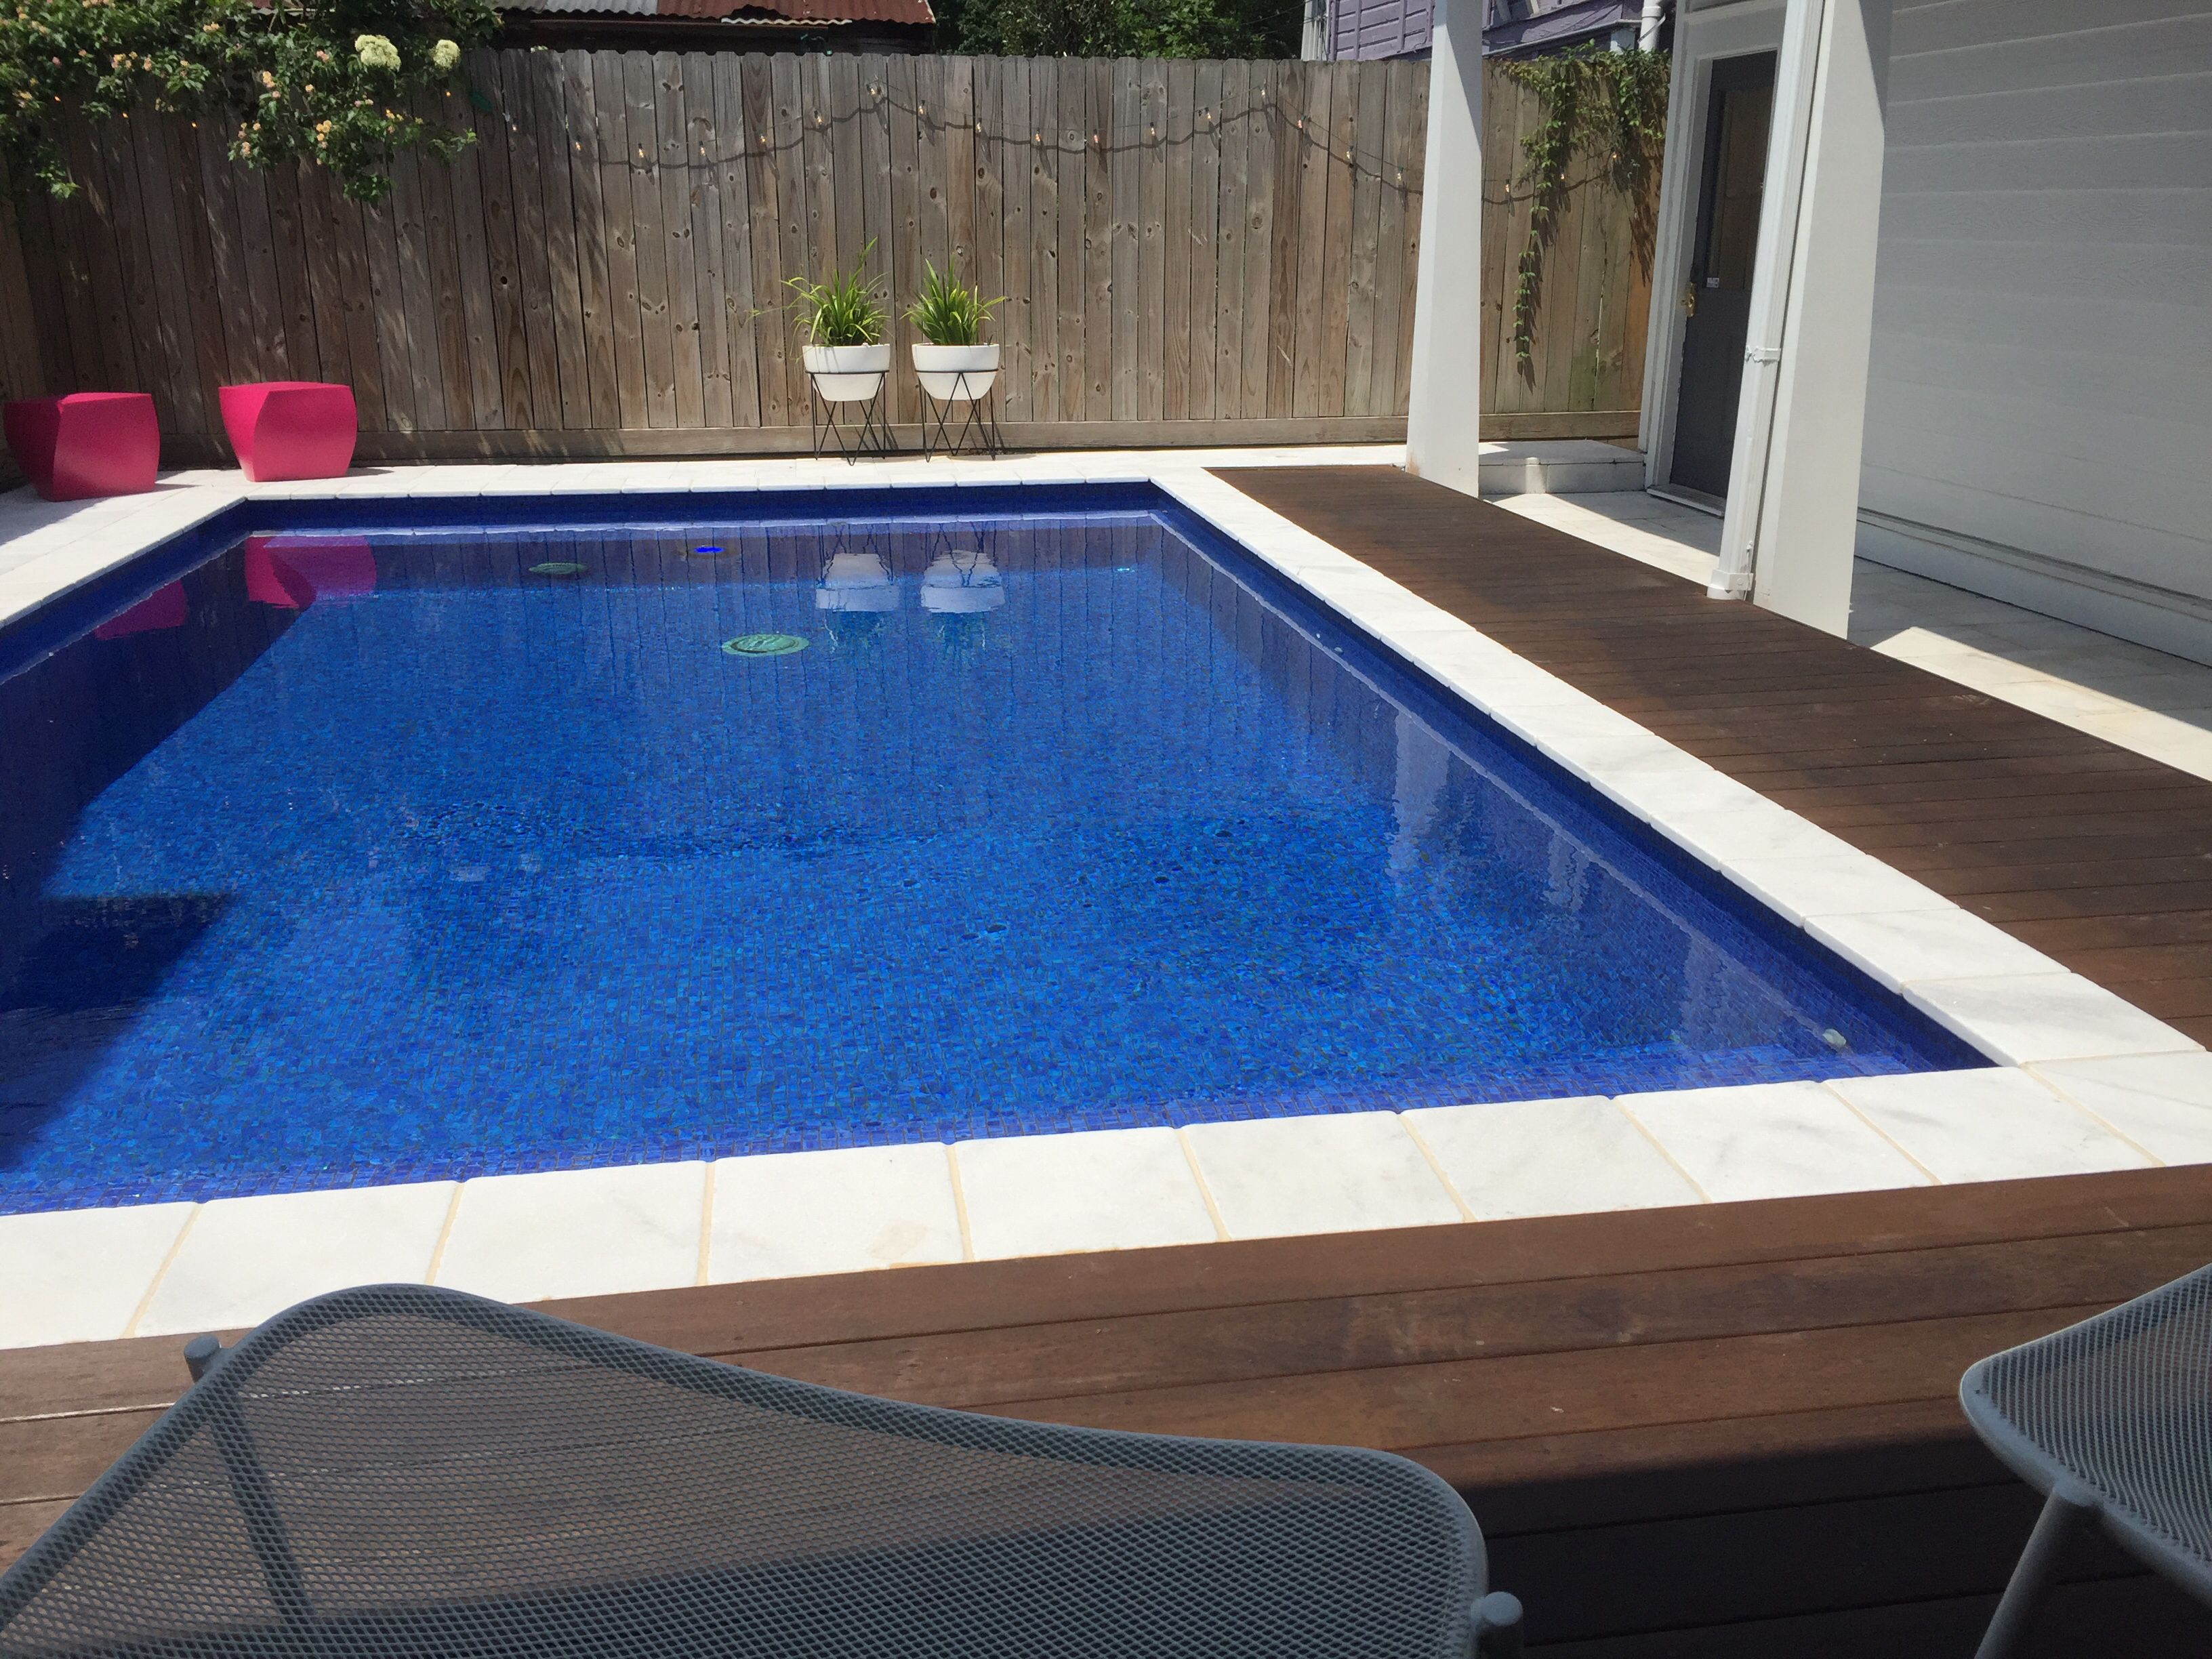 Oiled Ipe deck and snow white travertine against blue tile pool ...